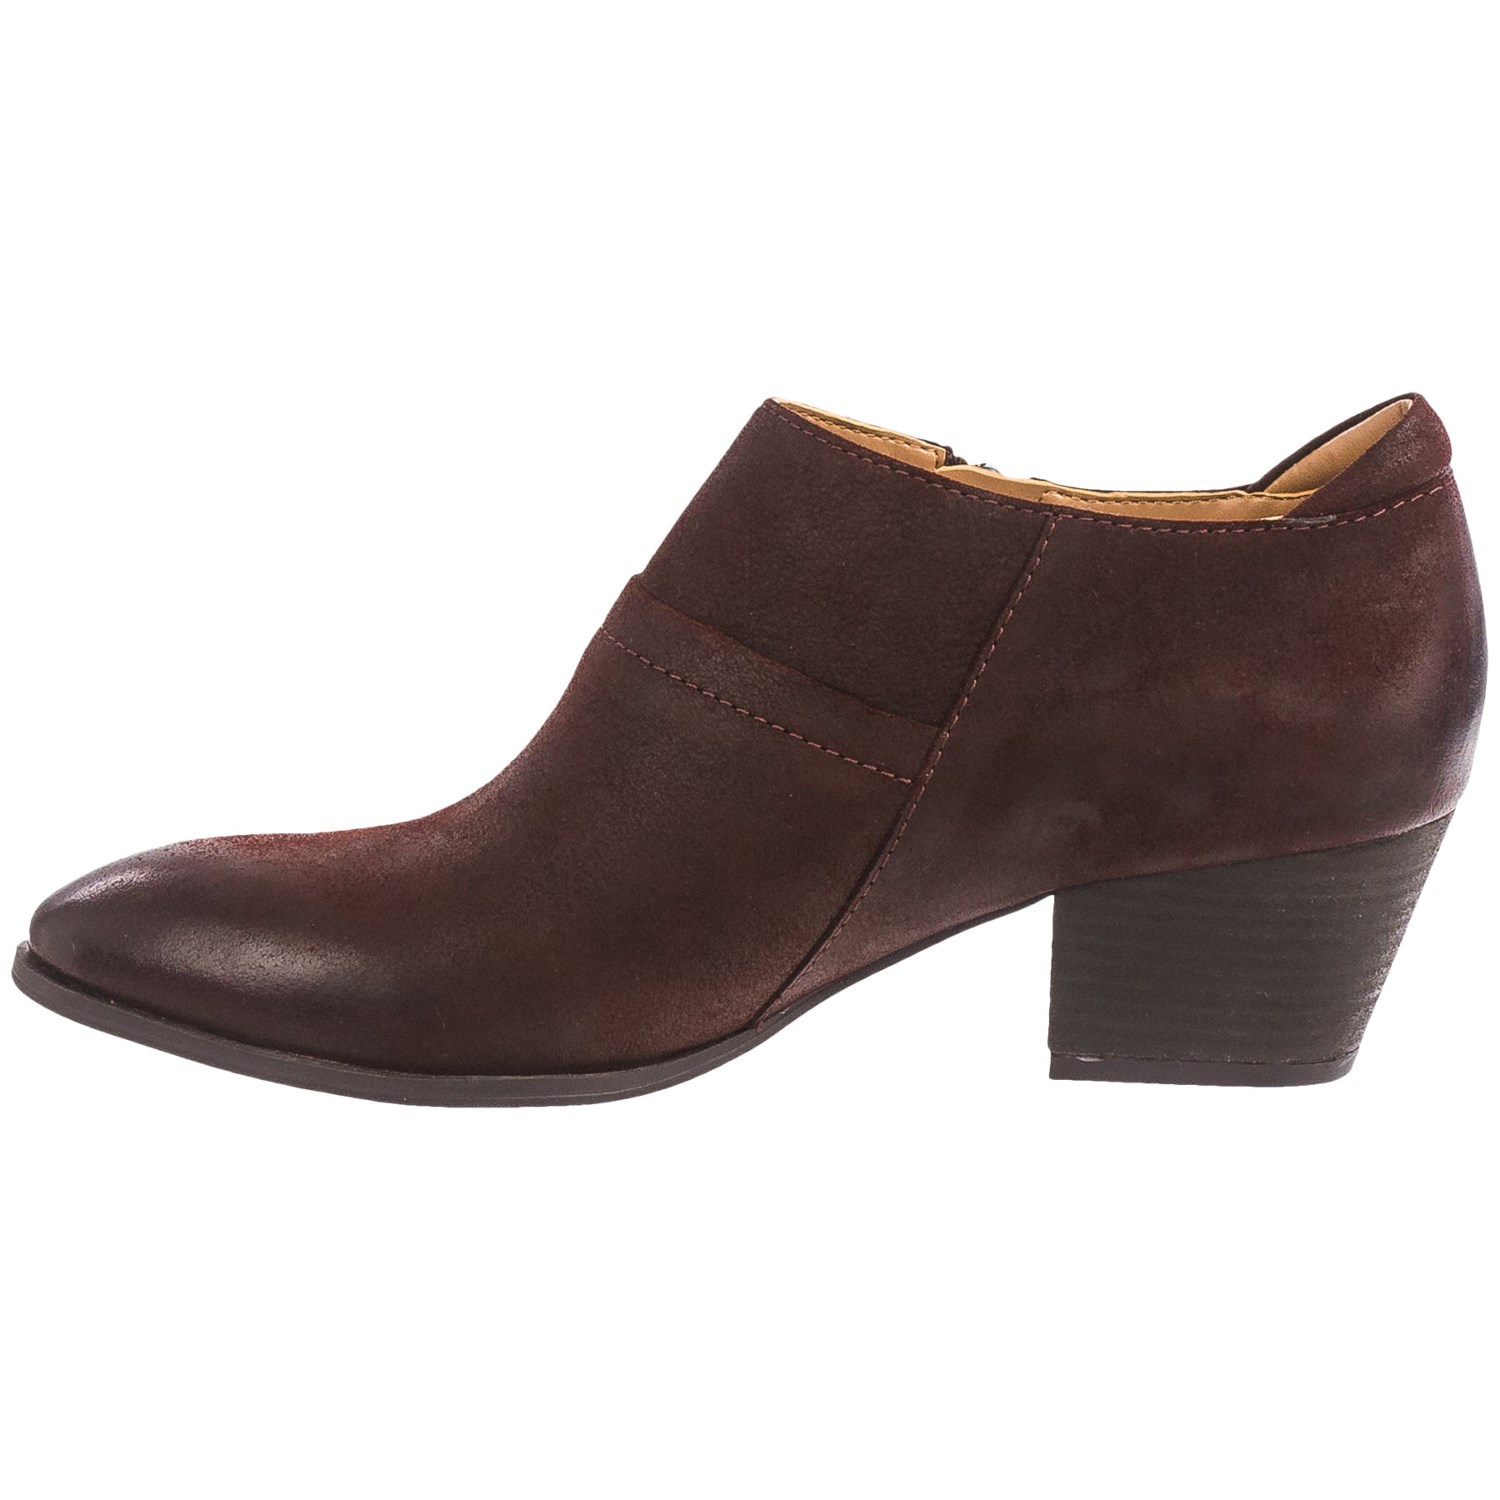 Franco Sarto Greco Ankle Boots (For Women) - Save 57%